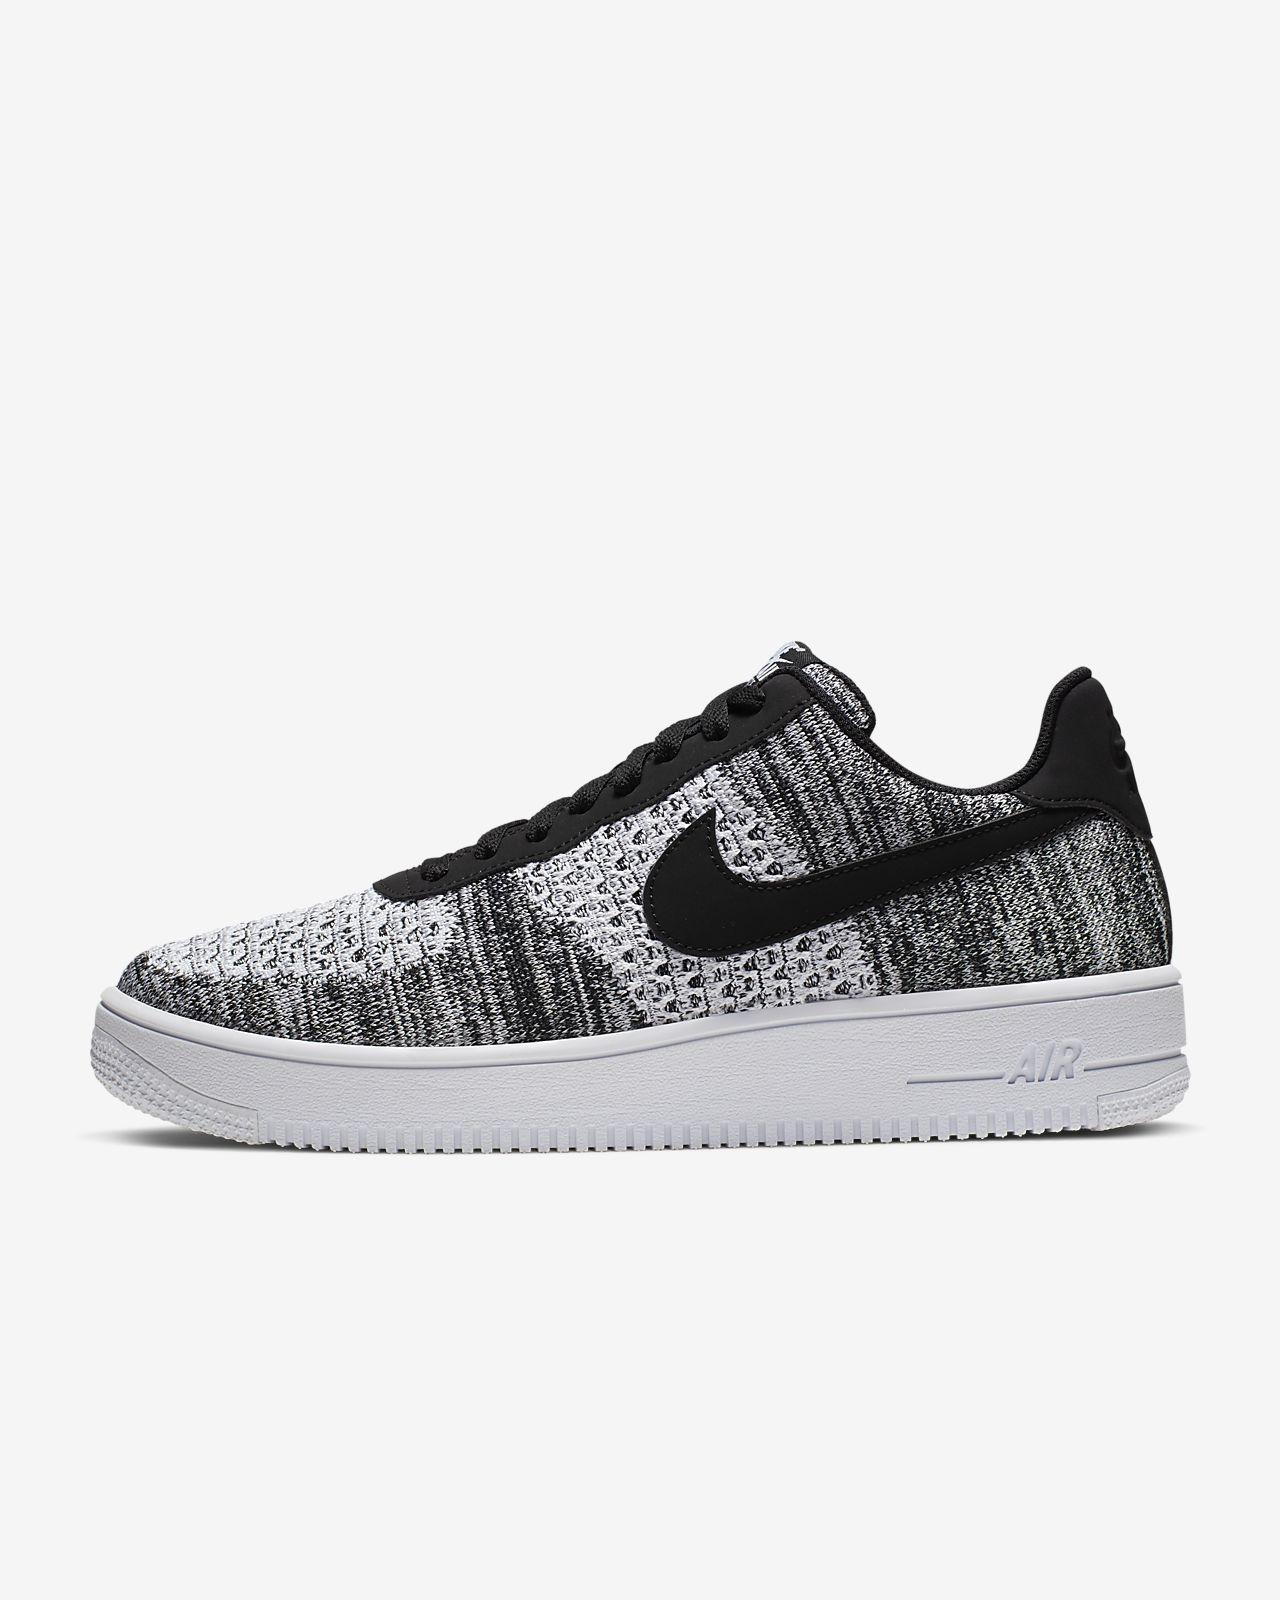 release date 1473a df46c ... Chaussure Nike Air Force 1 Flyknit 2.0 pour Homme